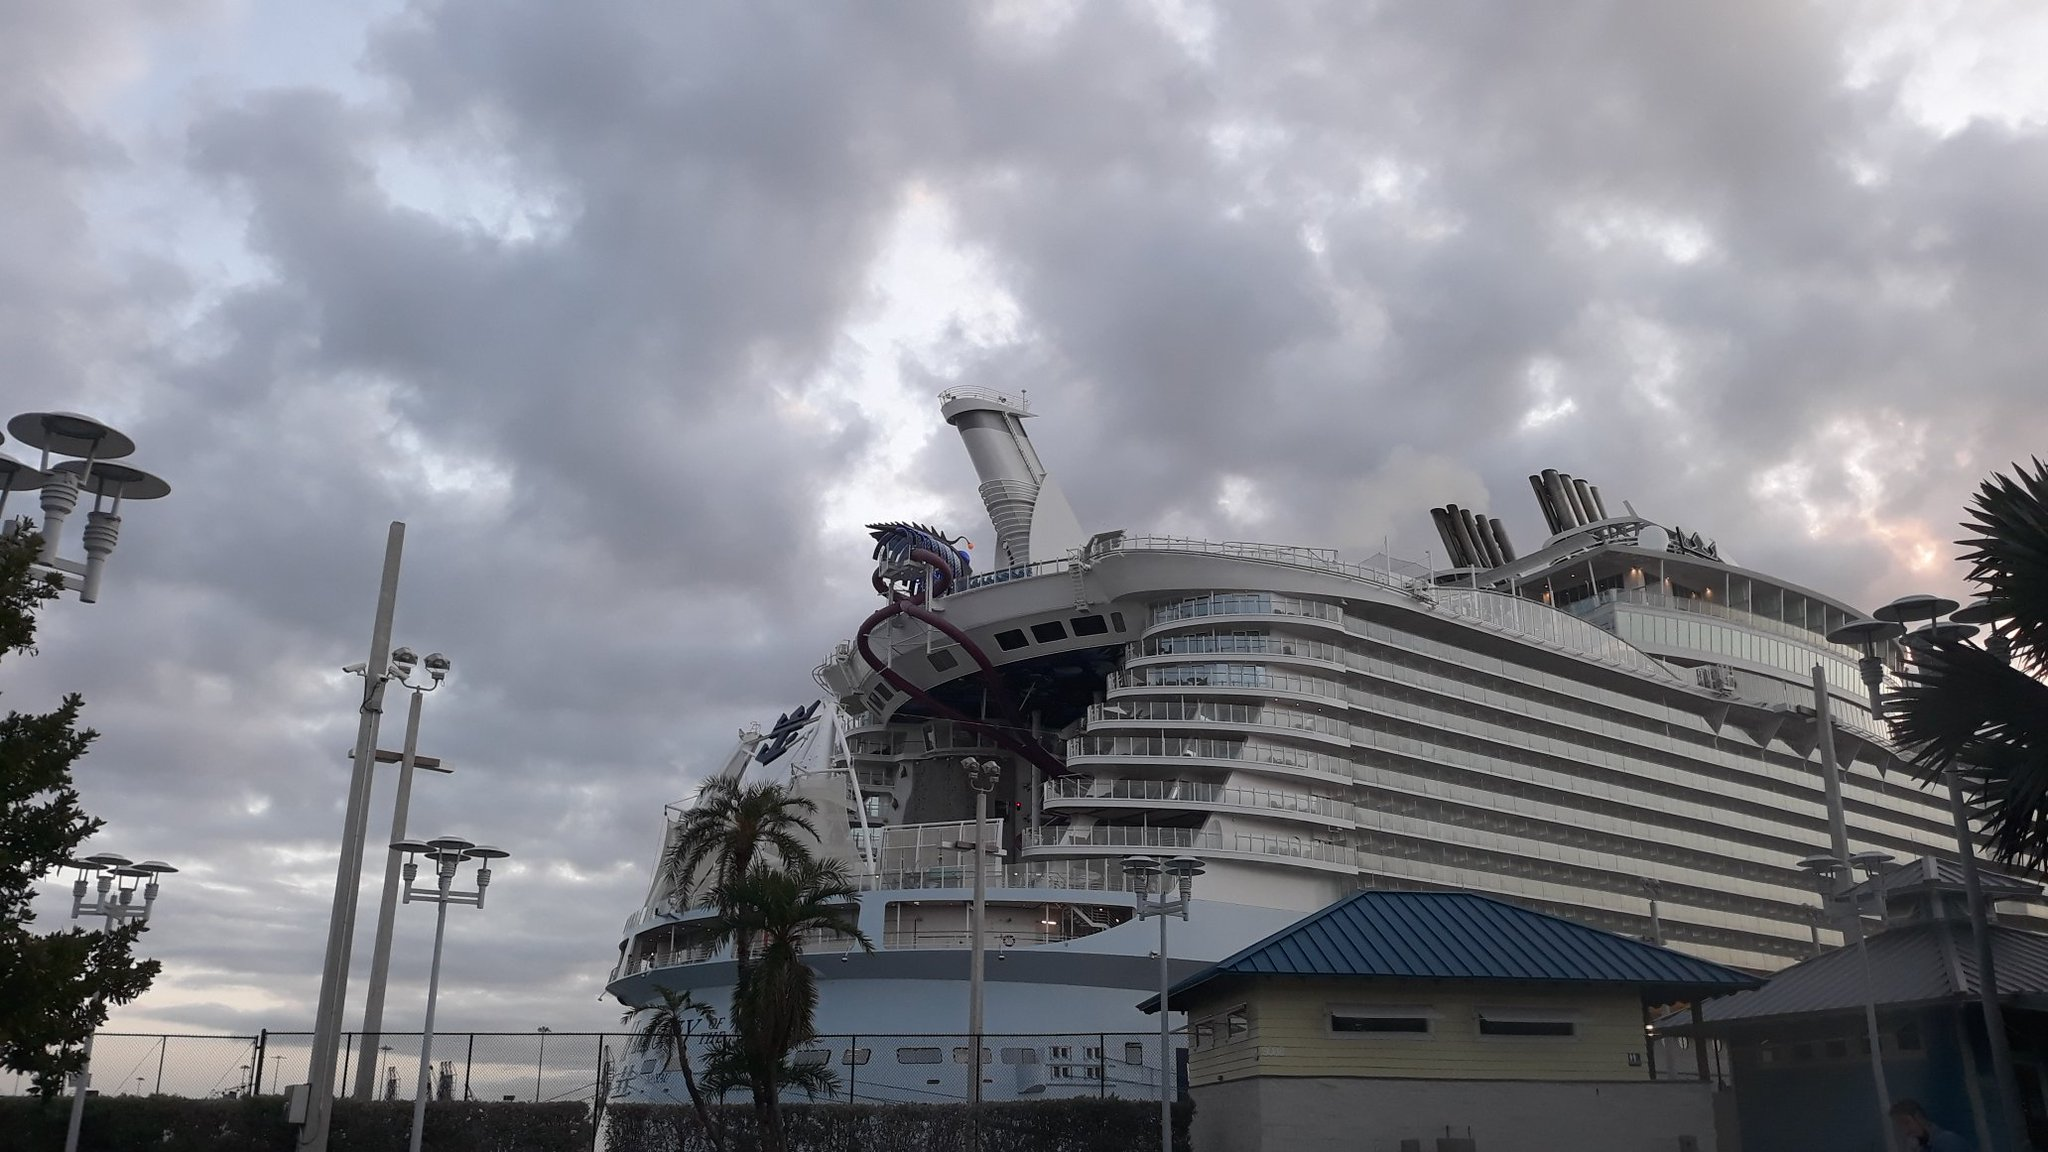 Two New Royal Caribbean Ships Homeport From Port Canaveral